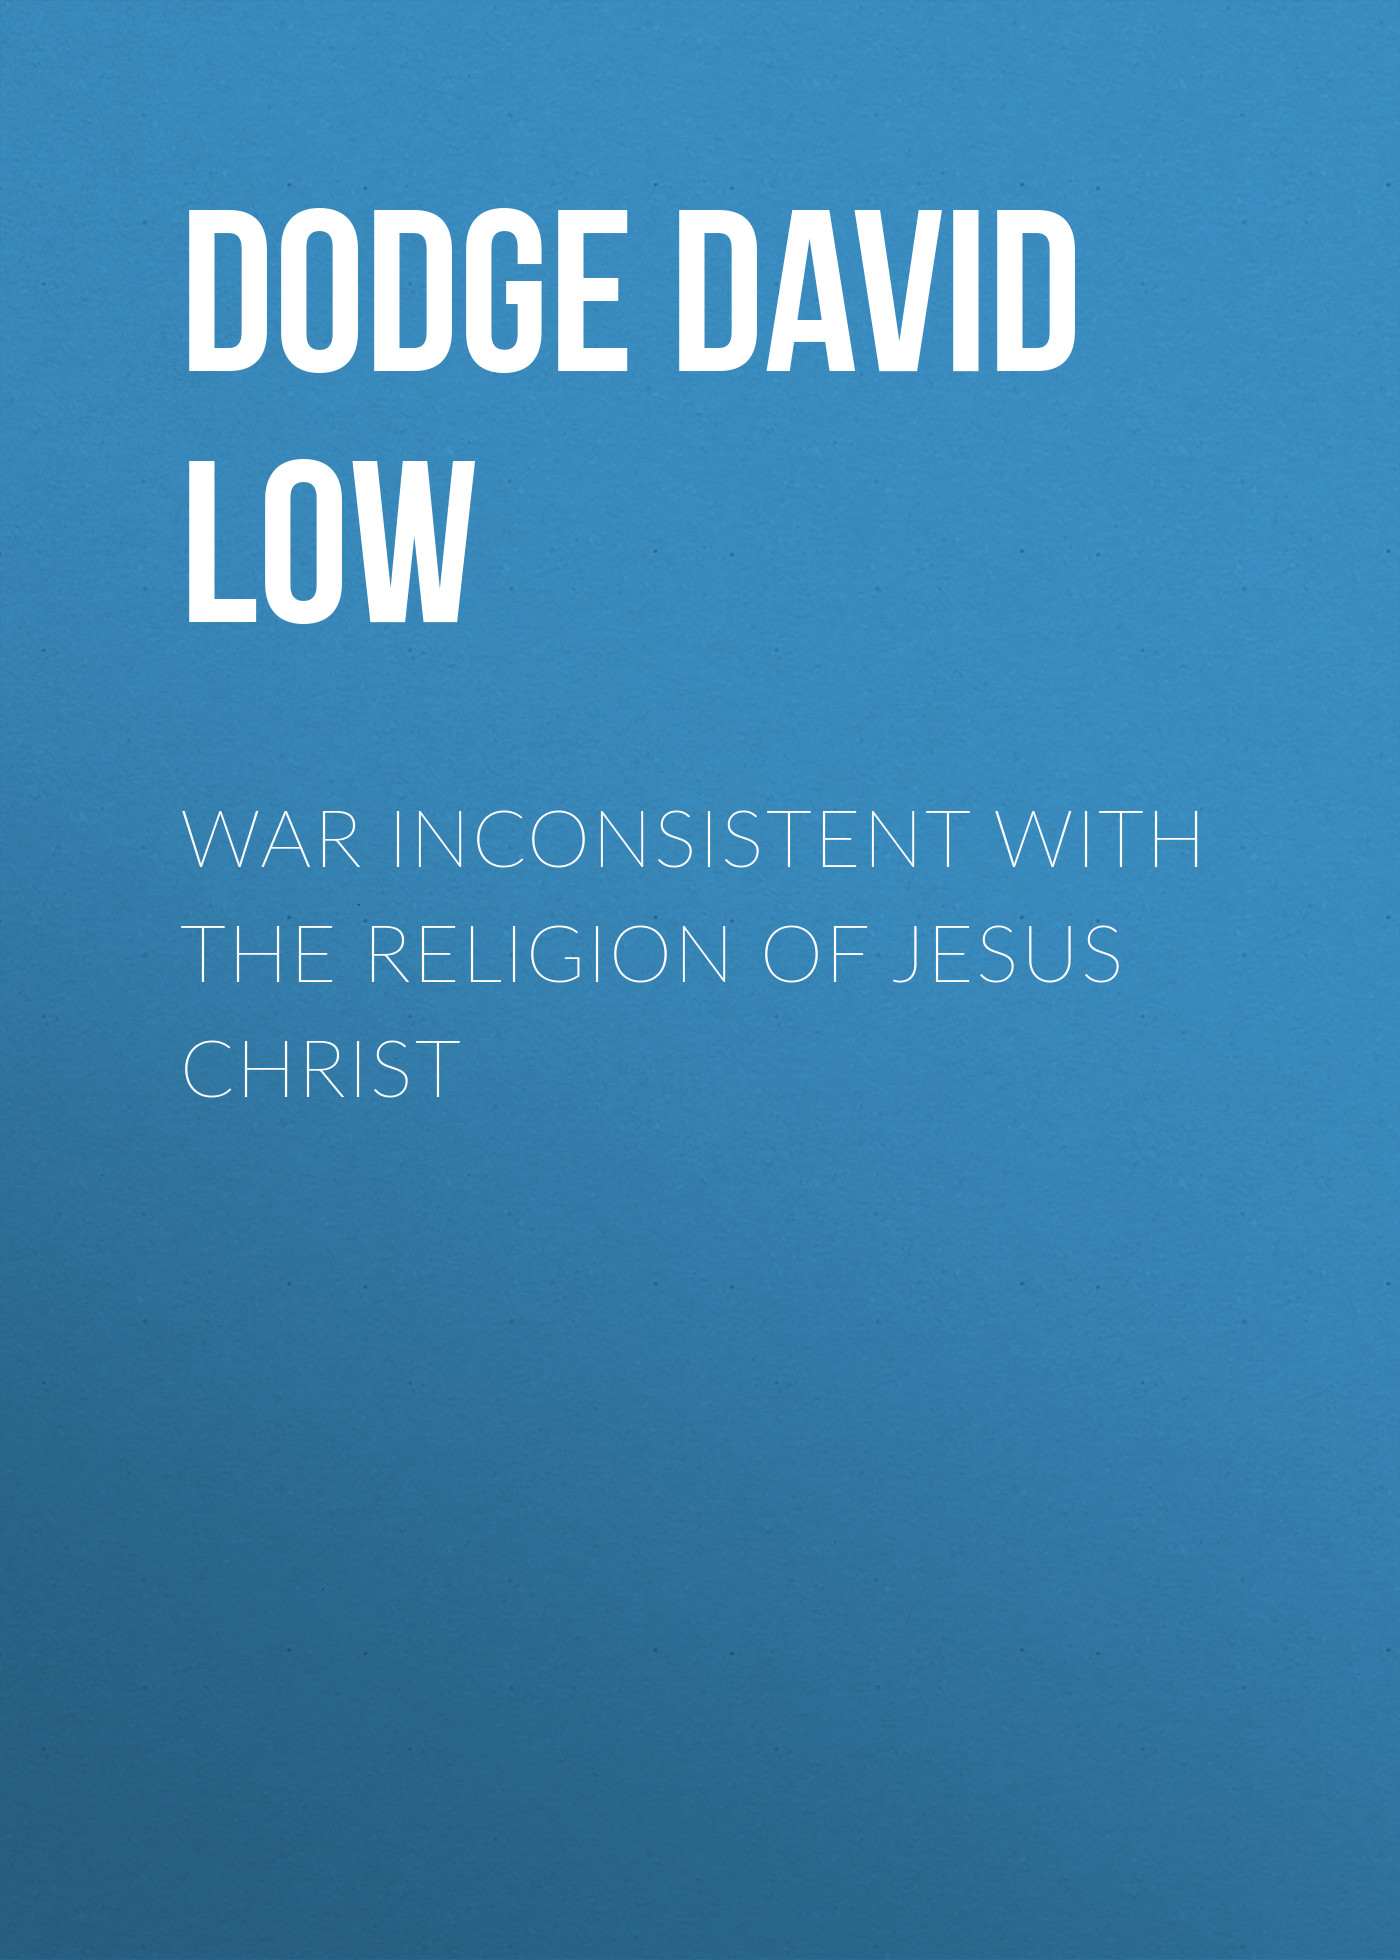 лучшая цена Dodge David Low War Inconsistent with the Religion of Jesus Christ